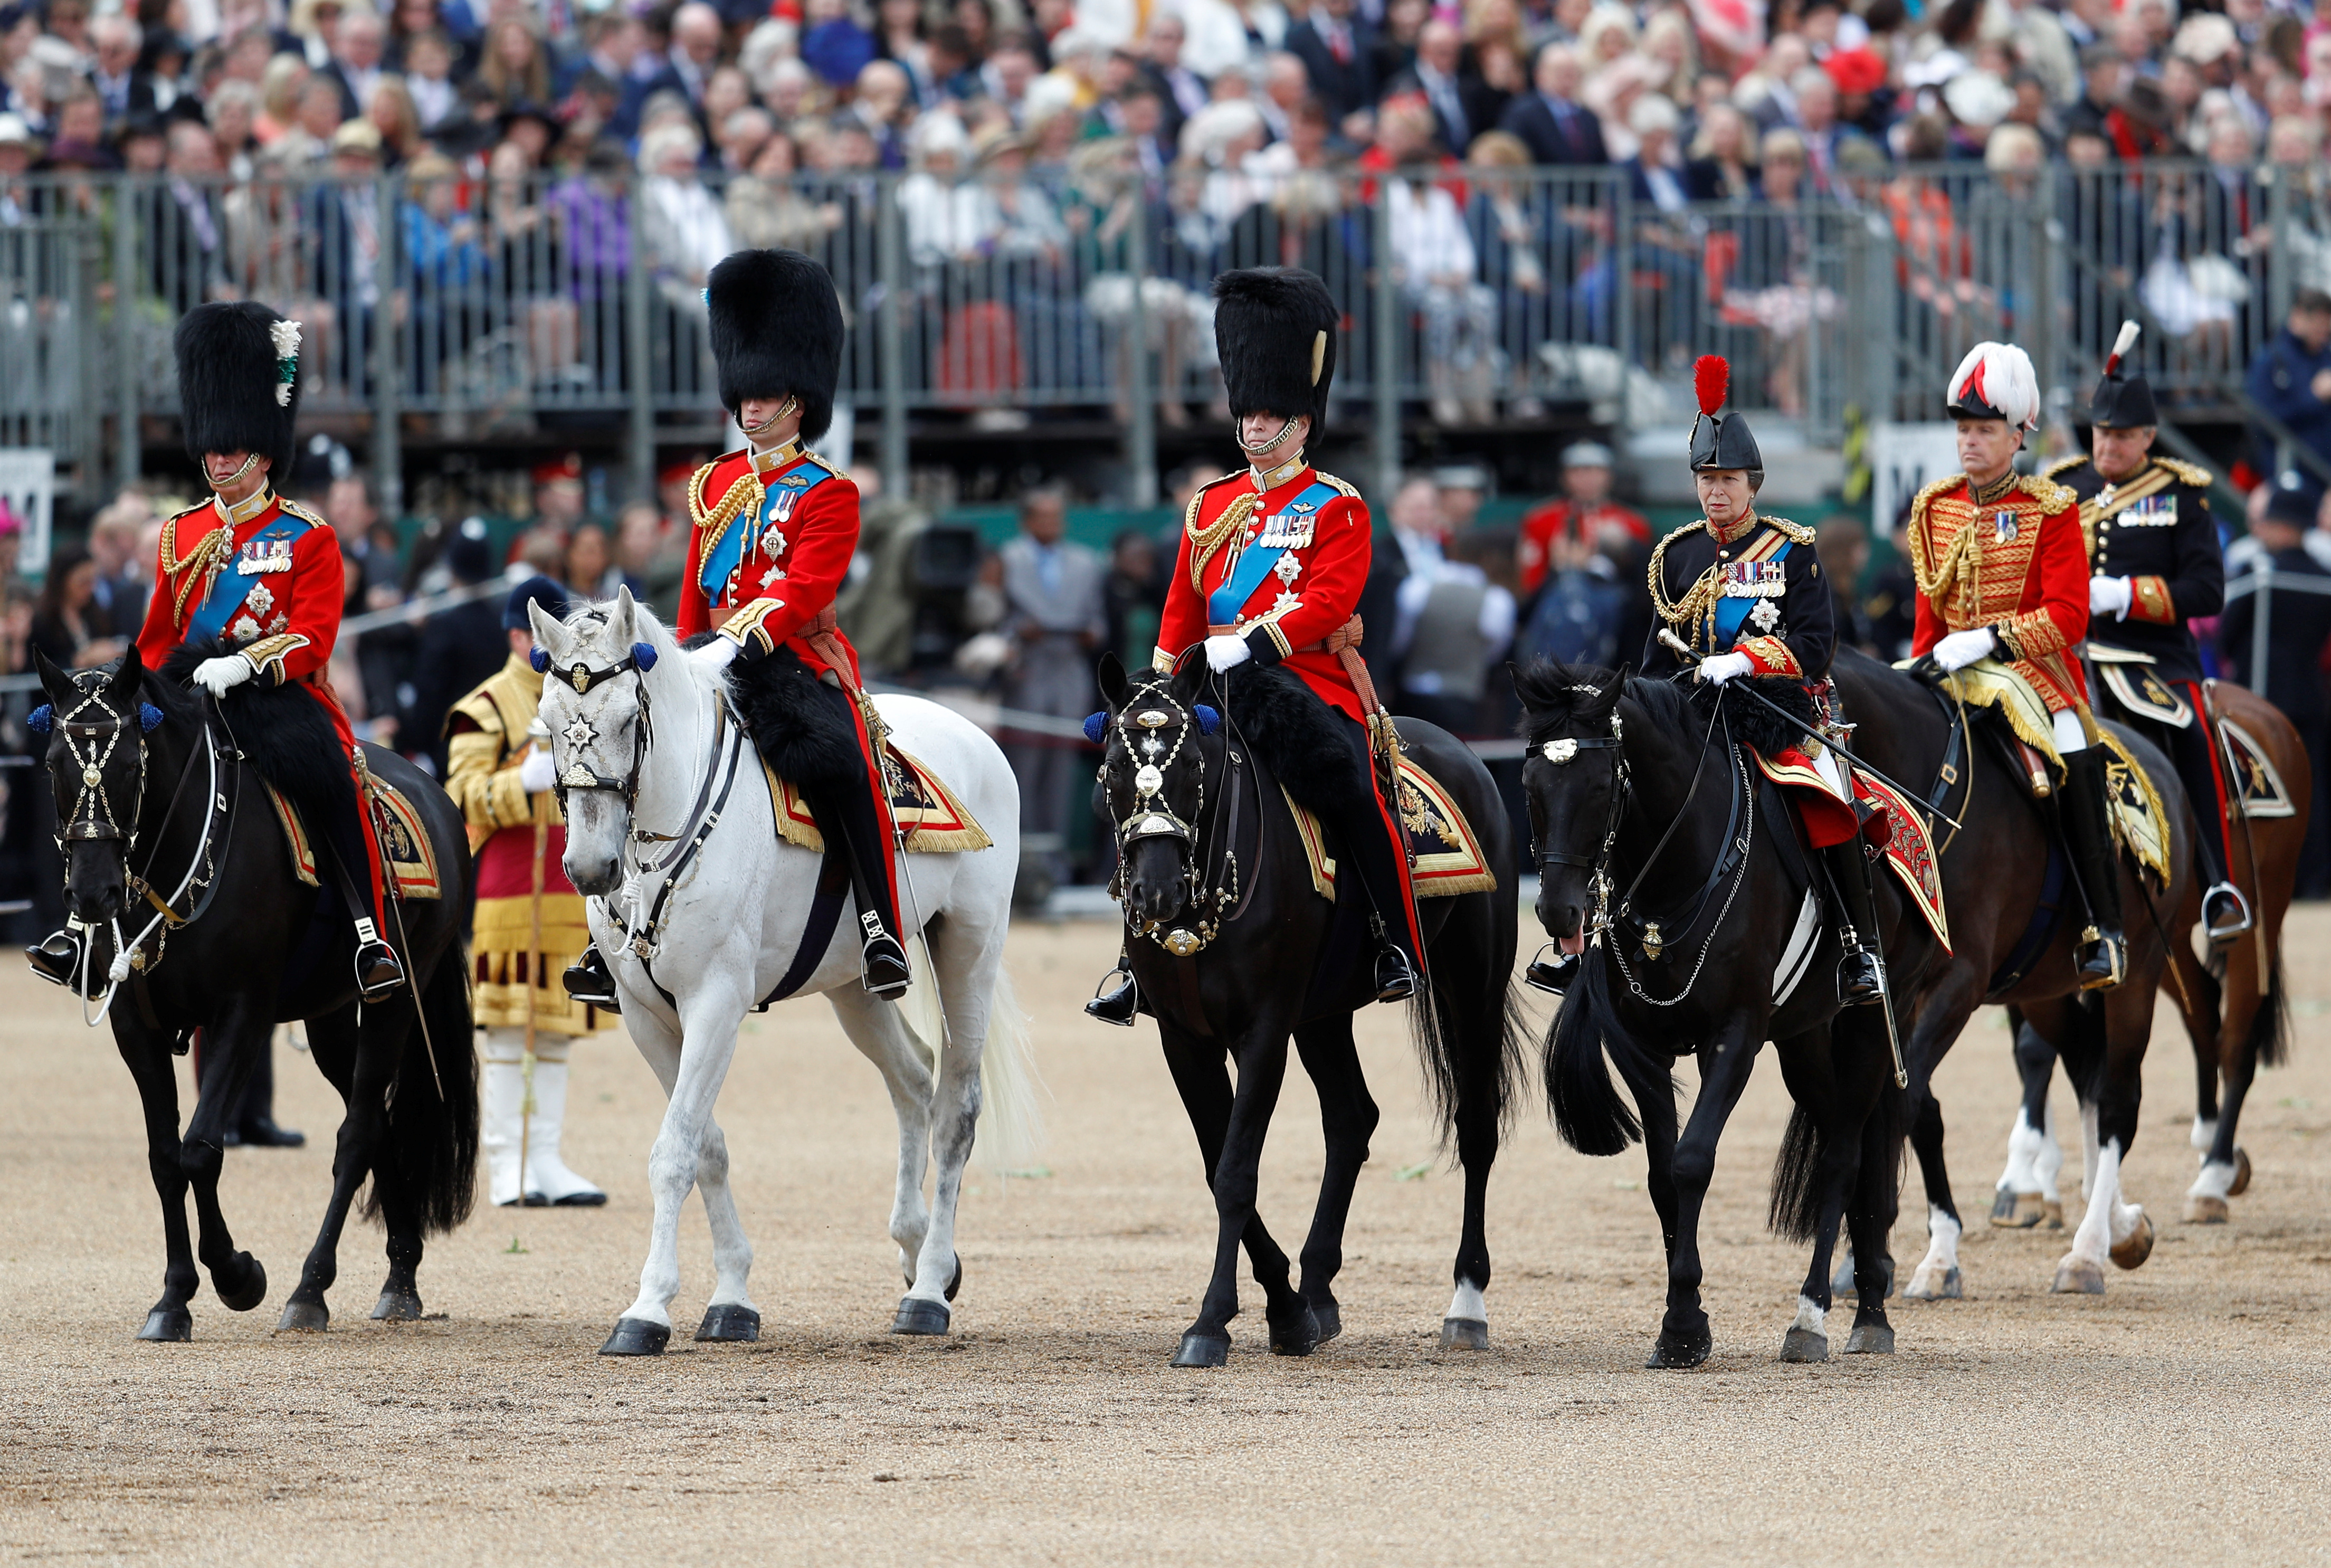 Britain's Prince Charles, Prince William, Prince Andrew and Princess Anne take part in the Trooping the Colour parade in central London, Britain June 8, 2019. REUTERS/Peter Nicholls